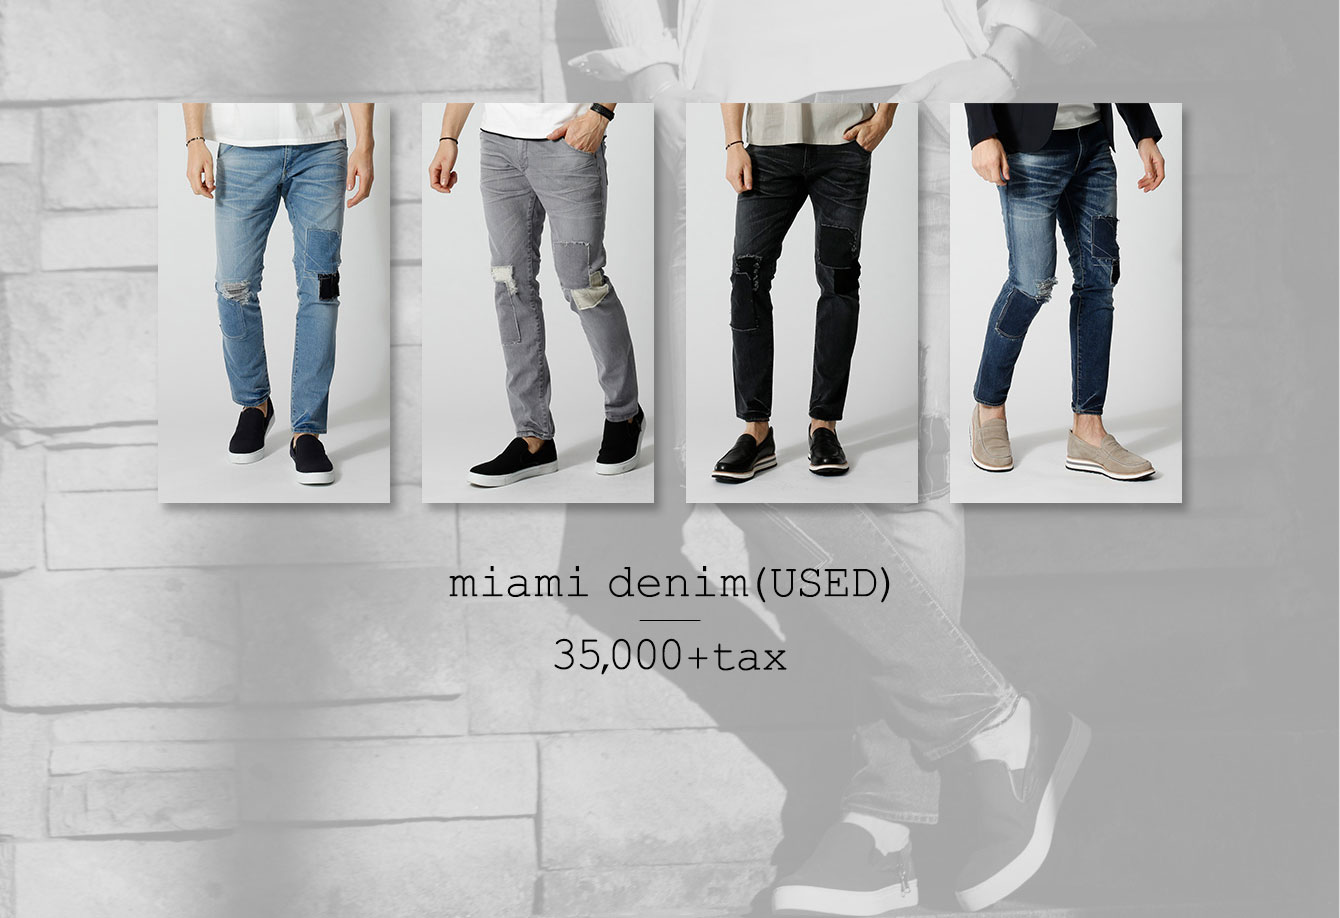 miami denim(USED) 35,000+tax